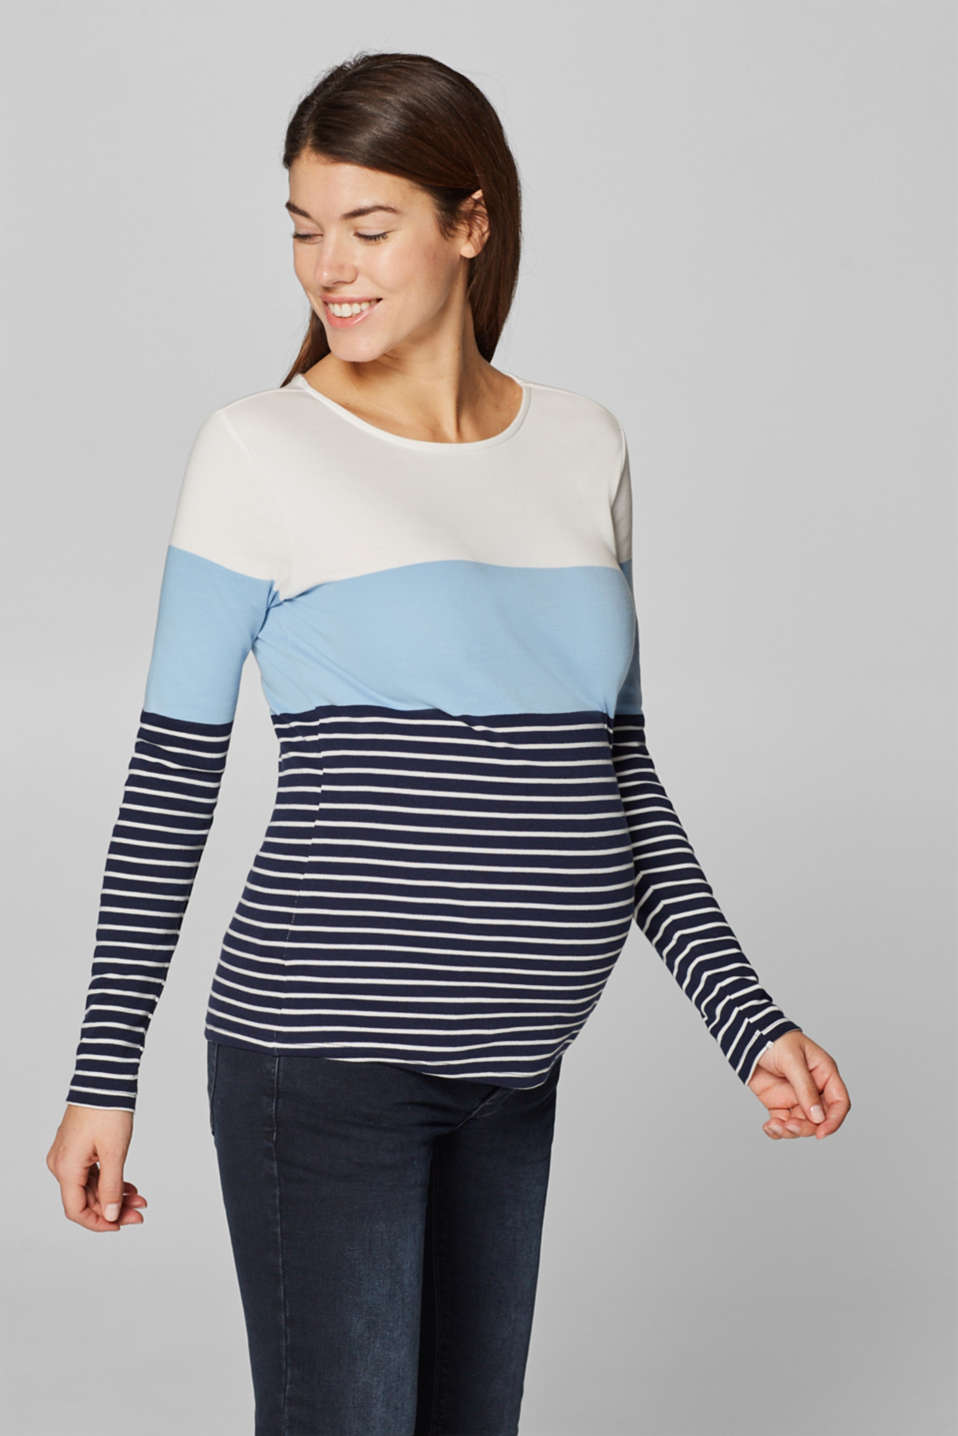 Esprit - Long sleeve top with colour blocking, 100% cotton